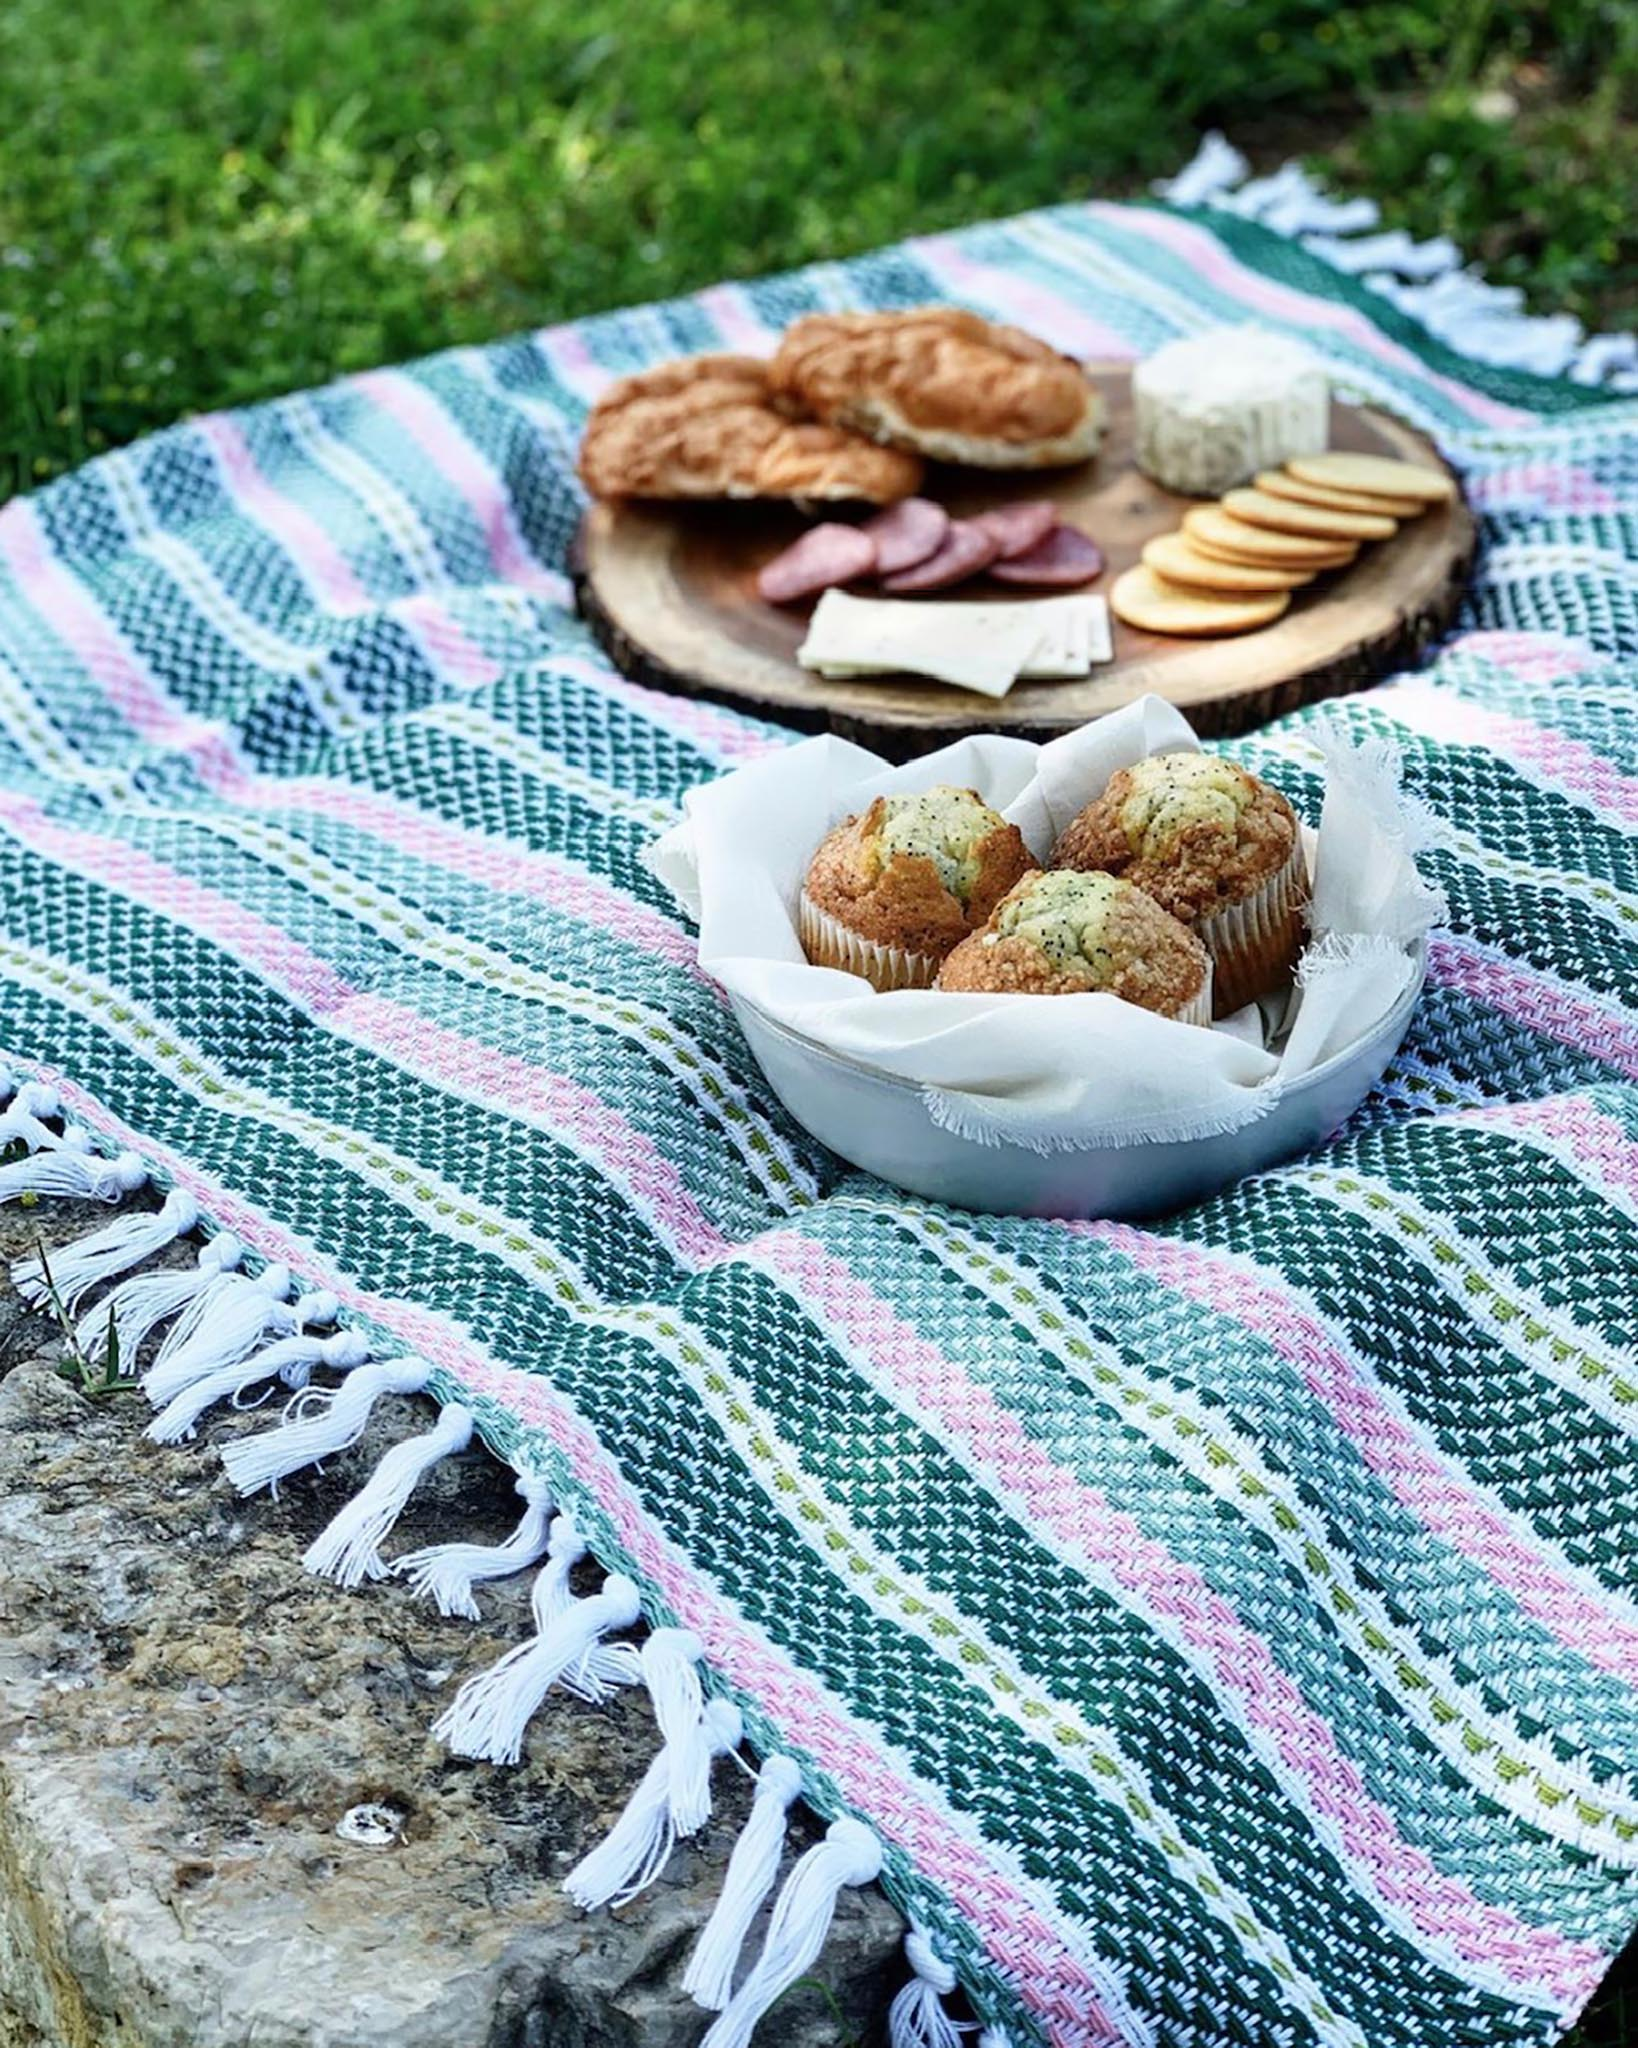 Free Weaving Pattern Handwoven Picnic Blanket